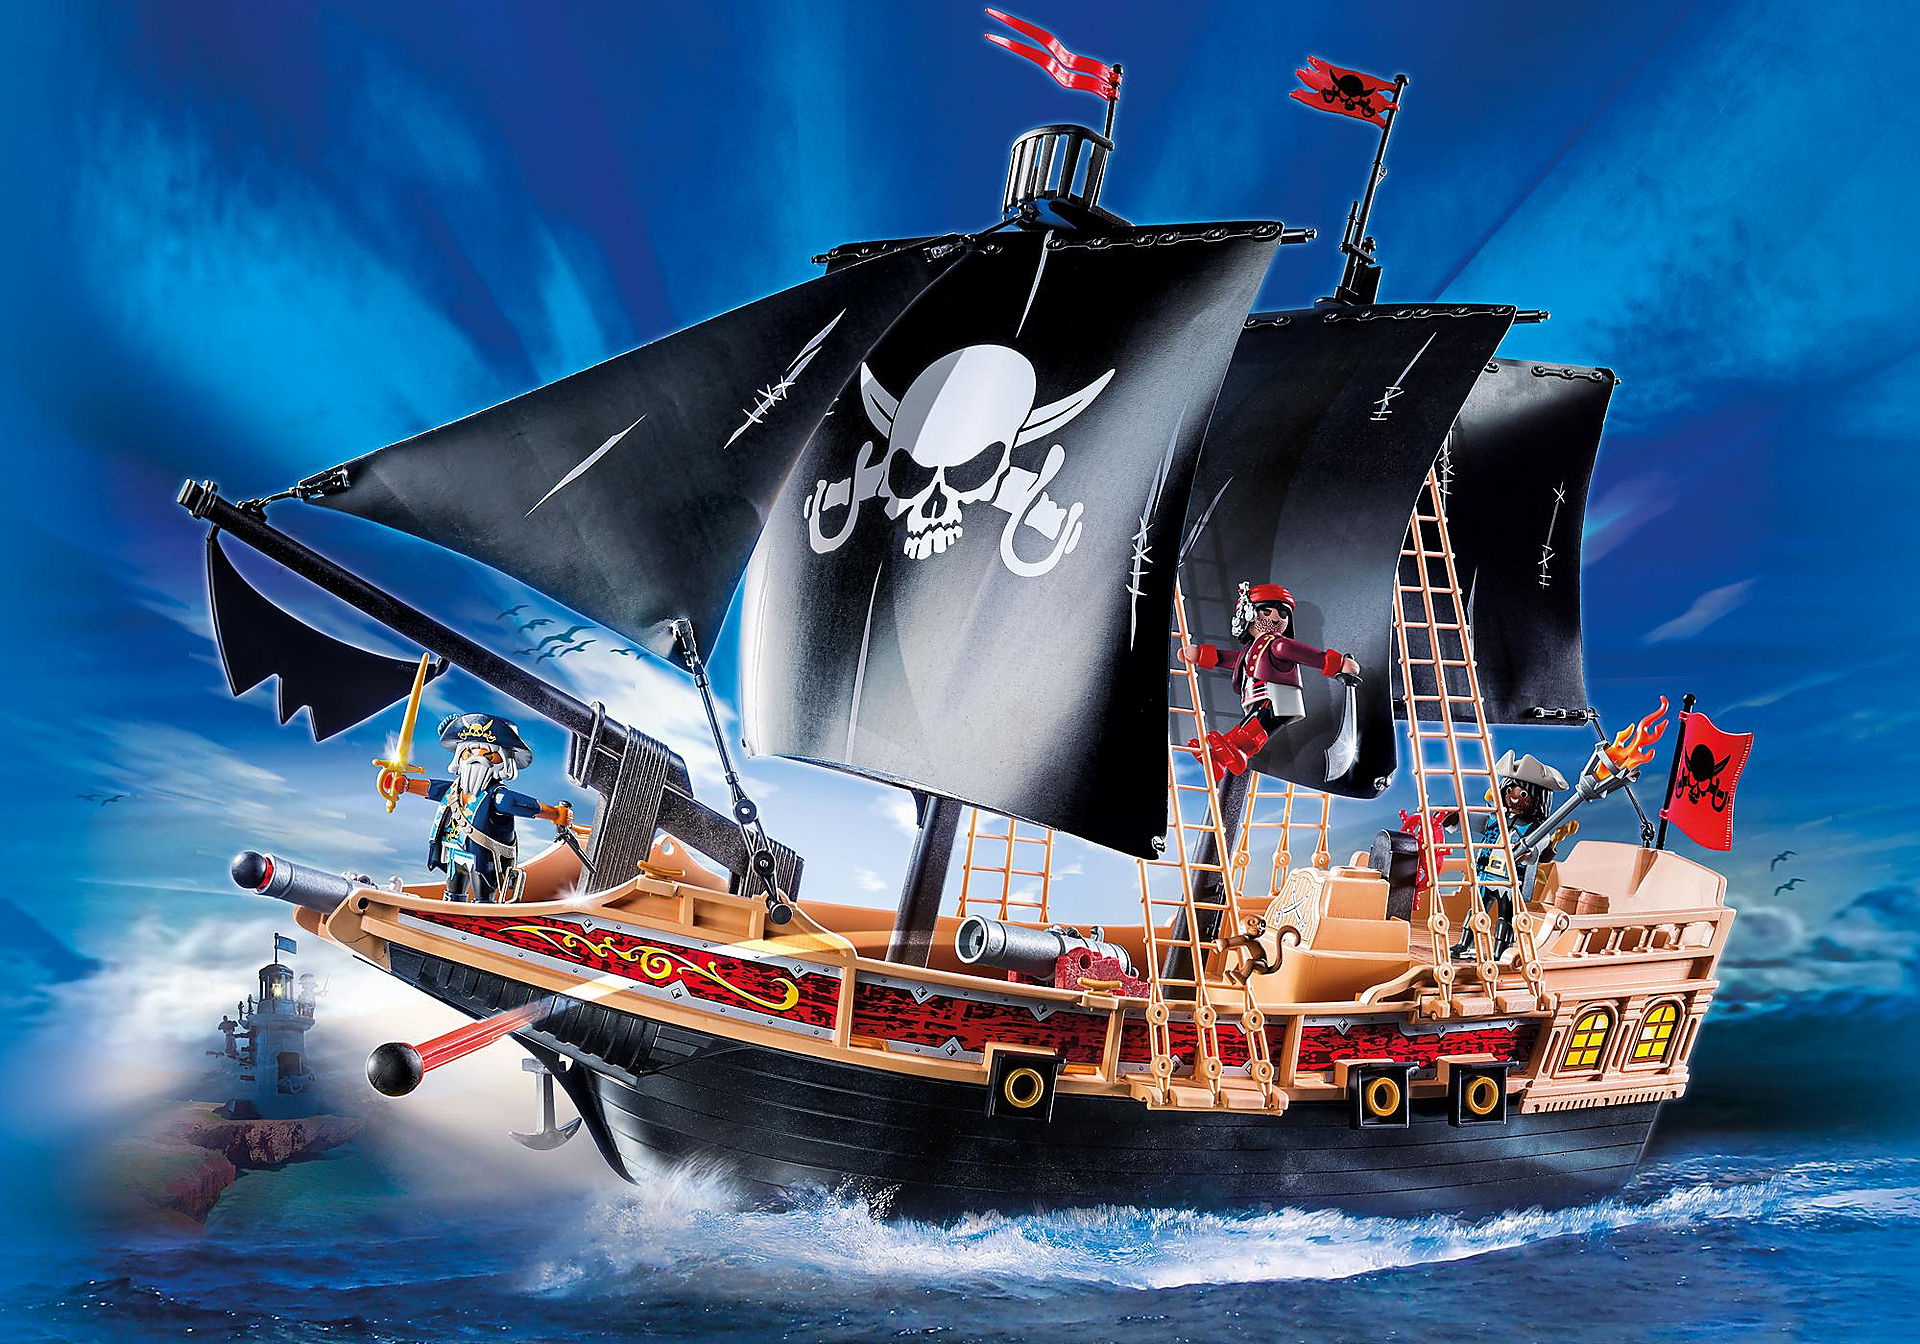 http://media.playmobil.com/i/playmobil/6678_product_detail/Piraten-Kampfschiff